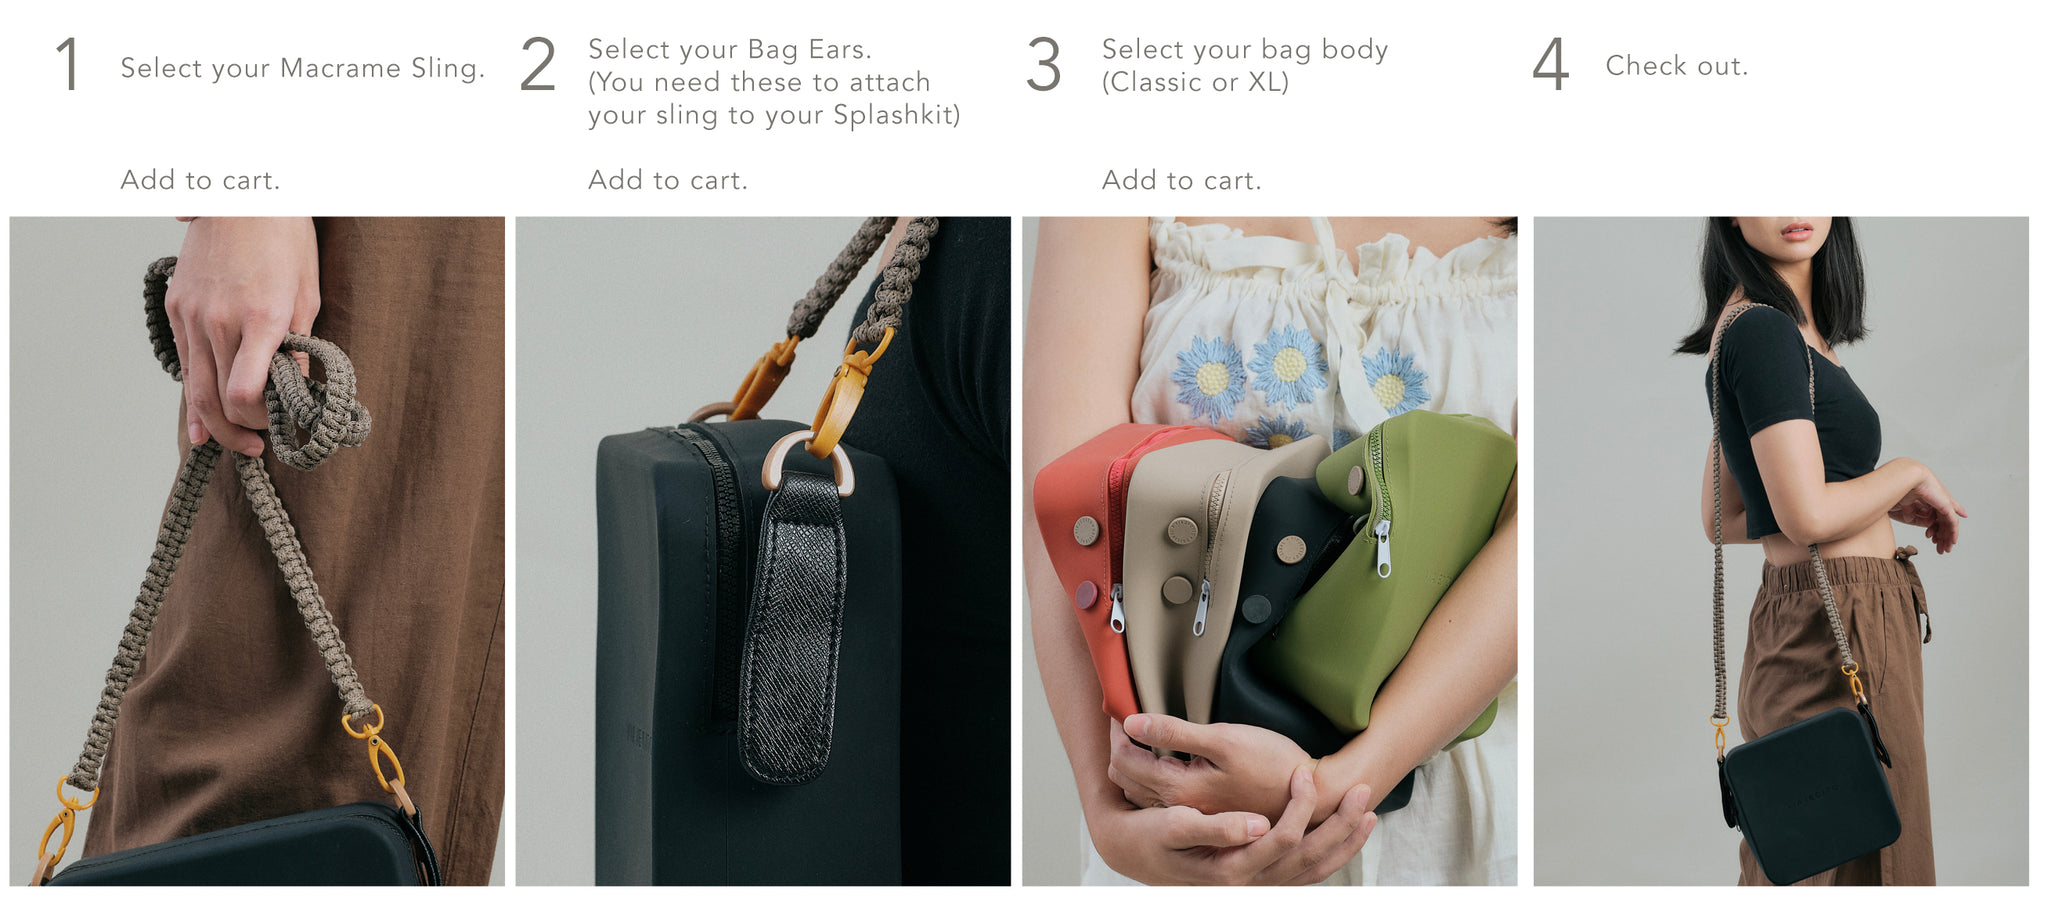 1.) Select your sling, 2.) Select your bag ears, 3.) Select your bag body, 4.) Check Out